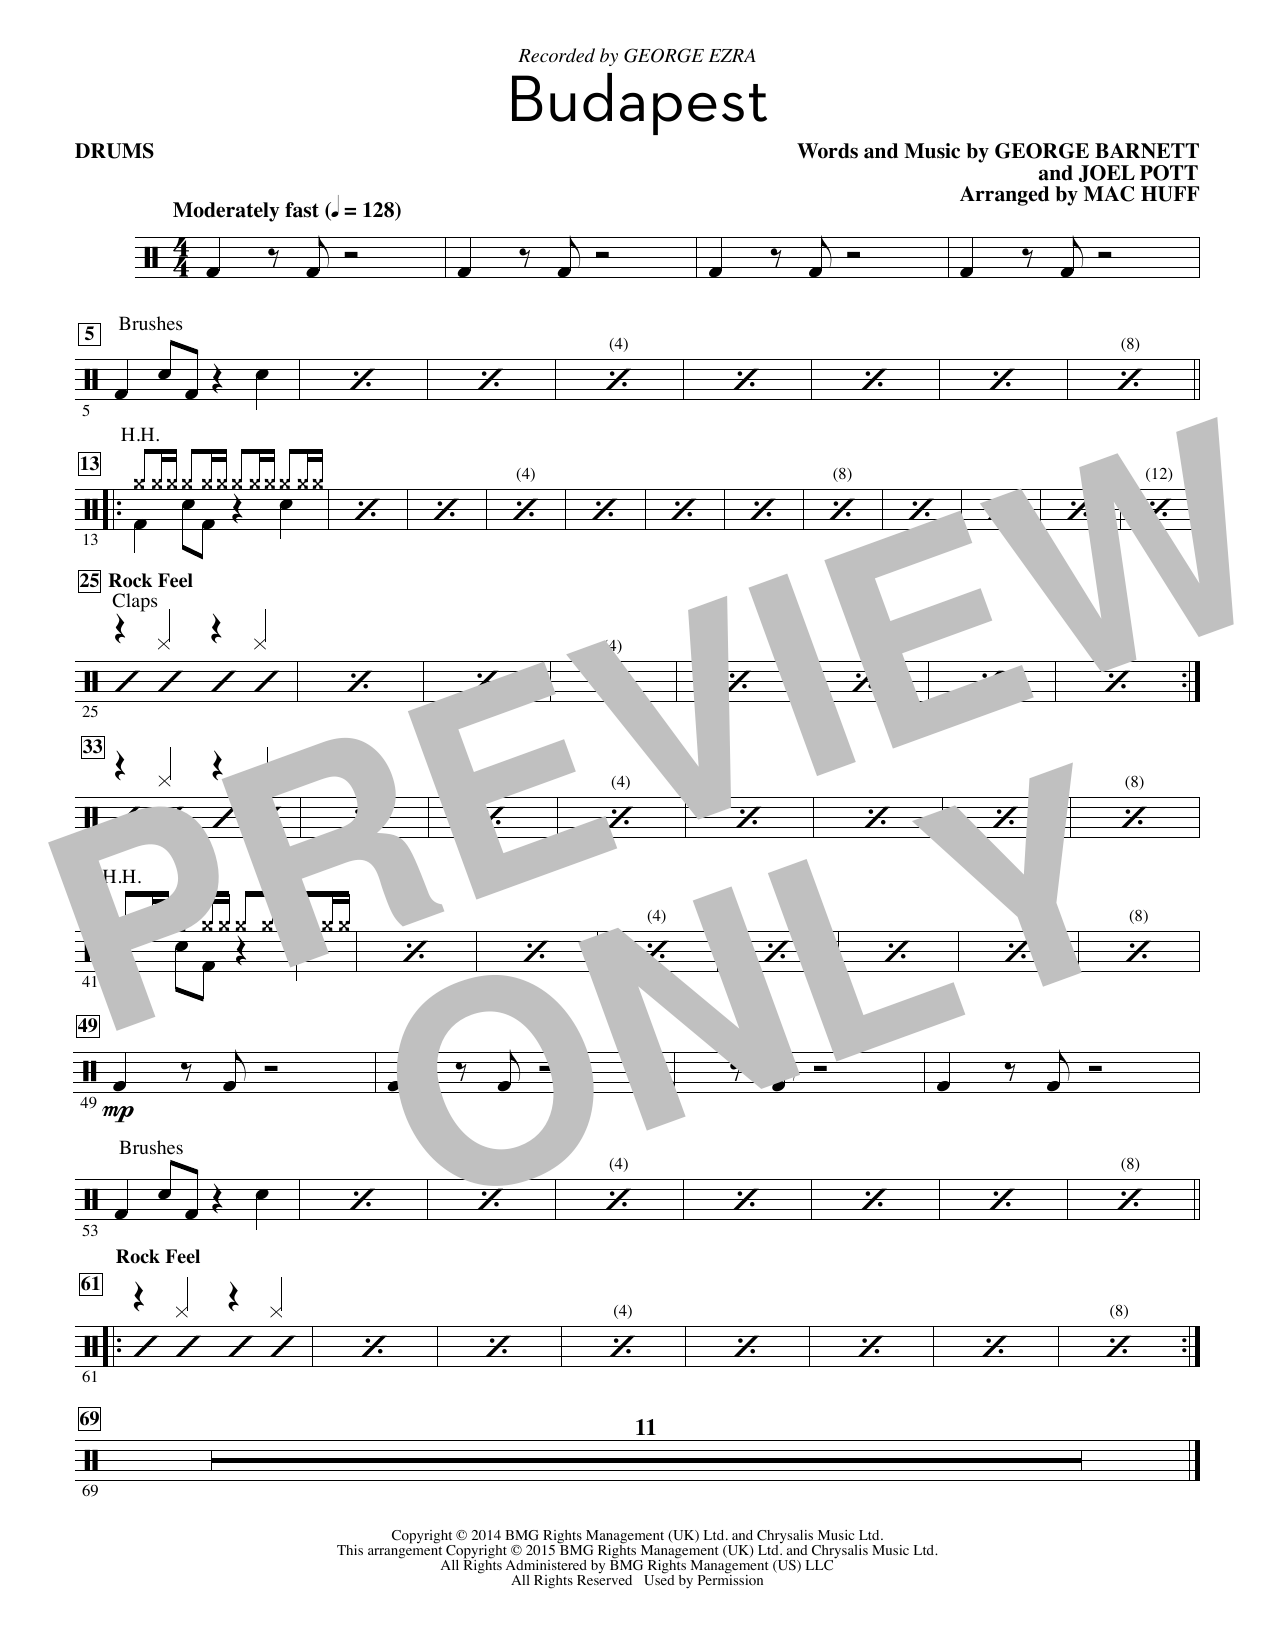 Download George Ezra 'Budapest (arr. Mac Huff) - Drum Set' Digital Sheet Music Notes & Chords and start playing in minutes